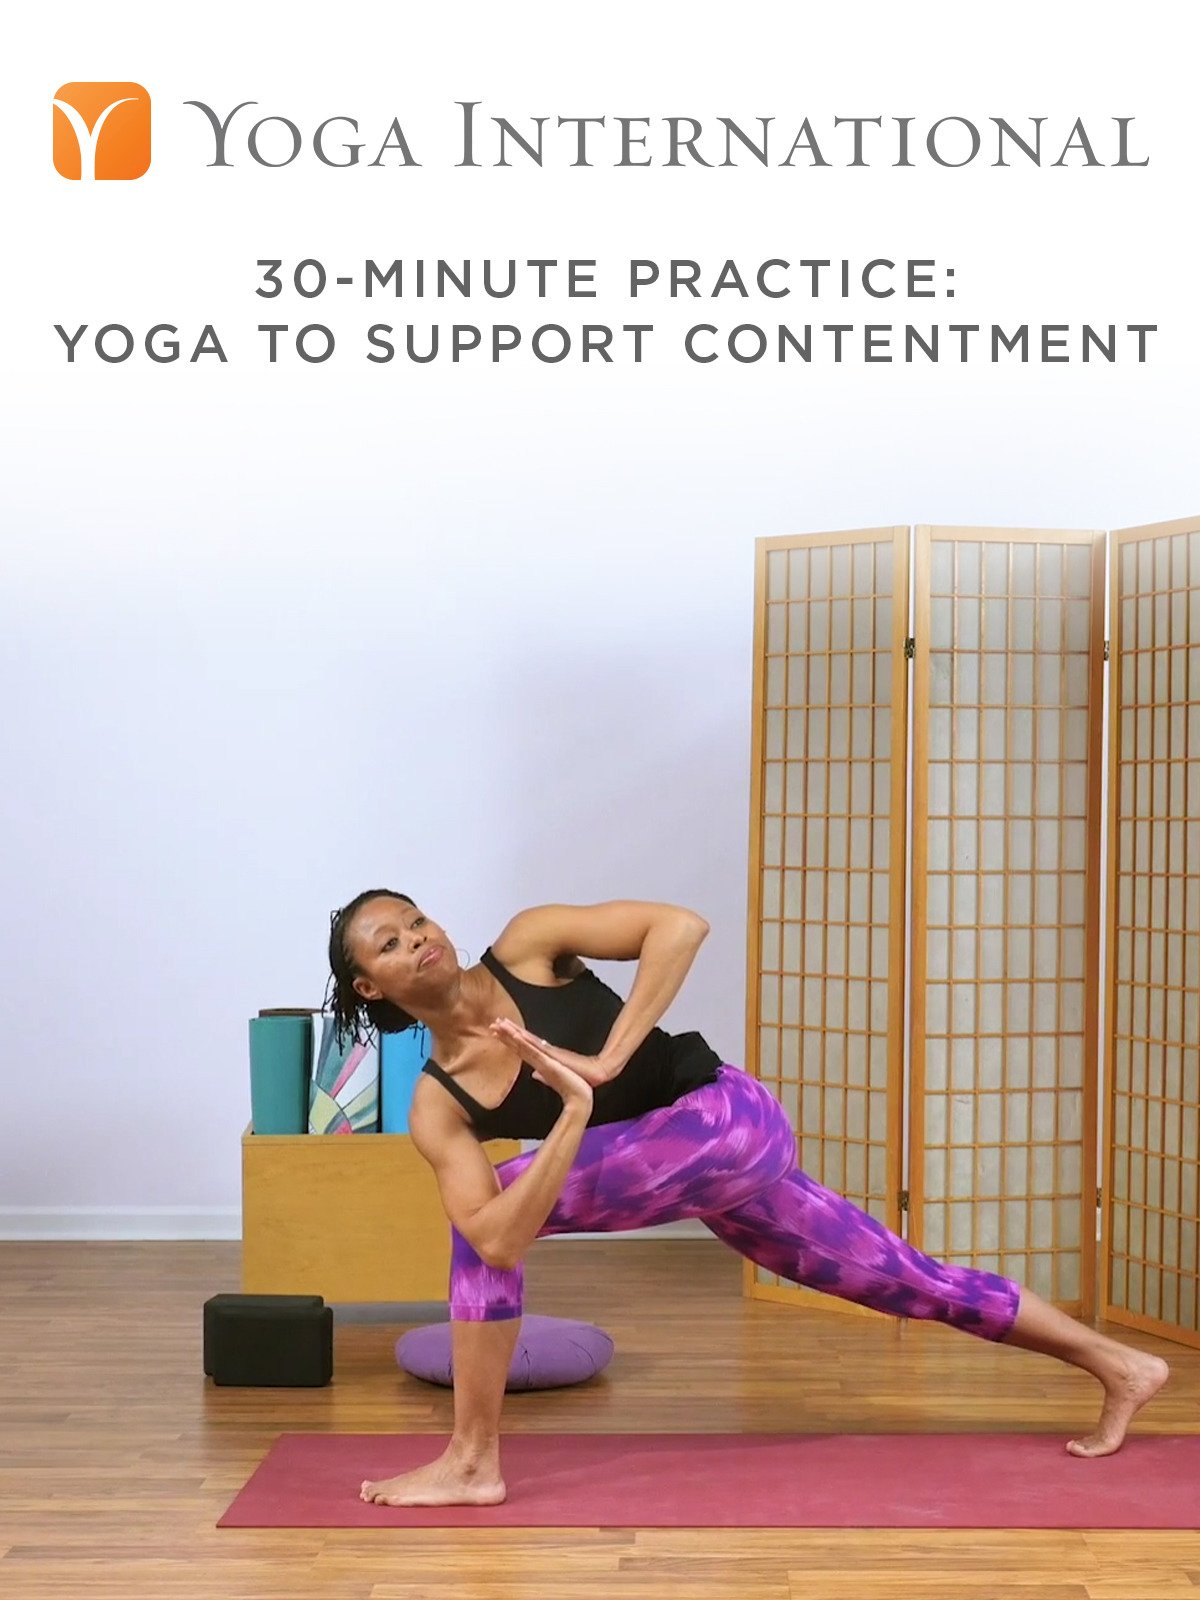 30-Minute Practice: Yoga to Support Contentment